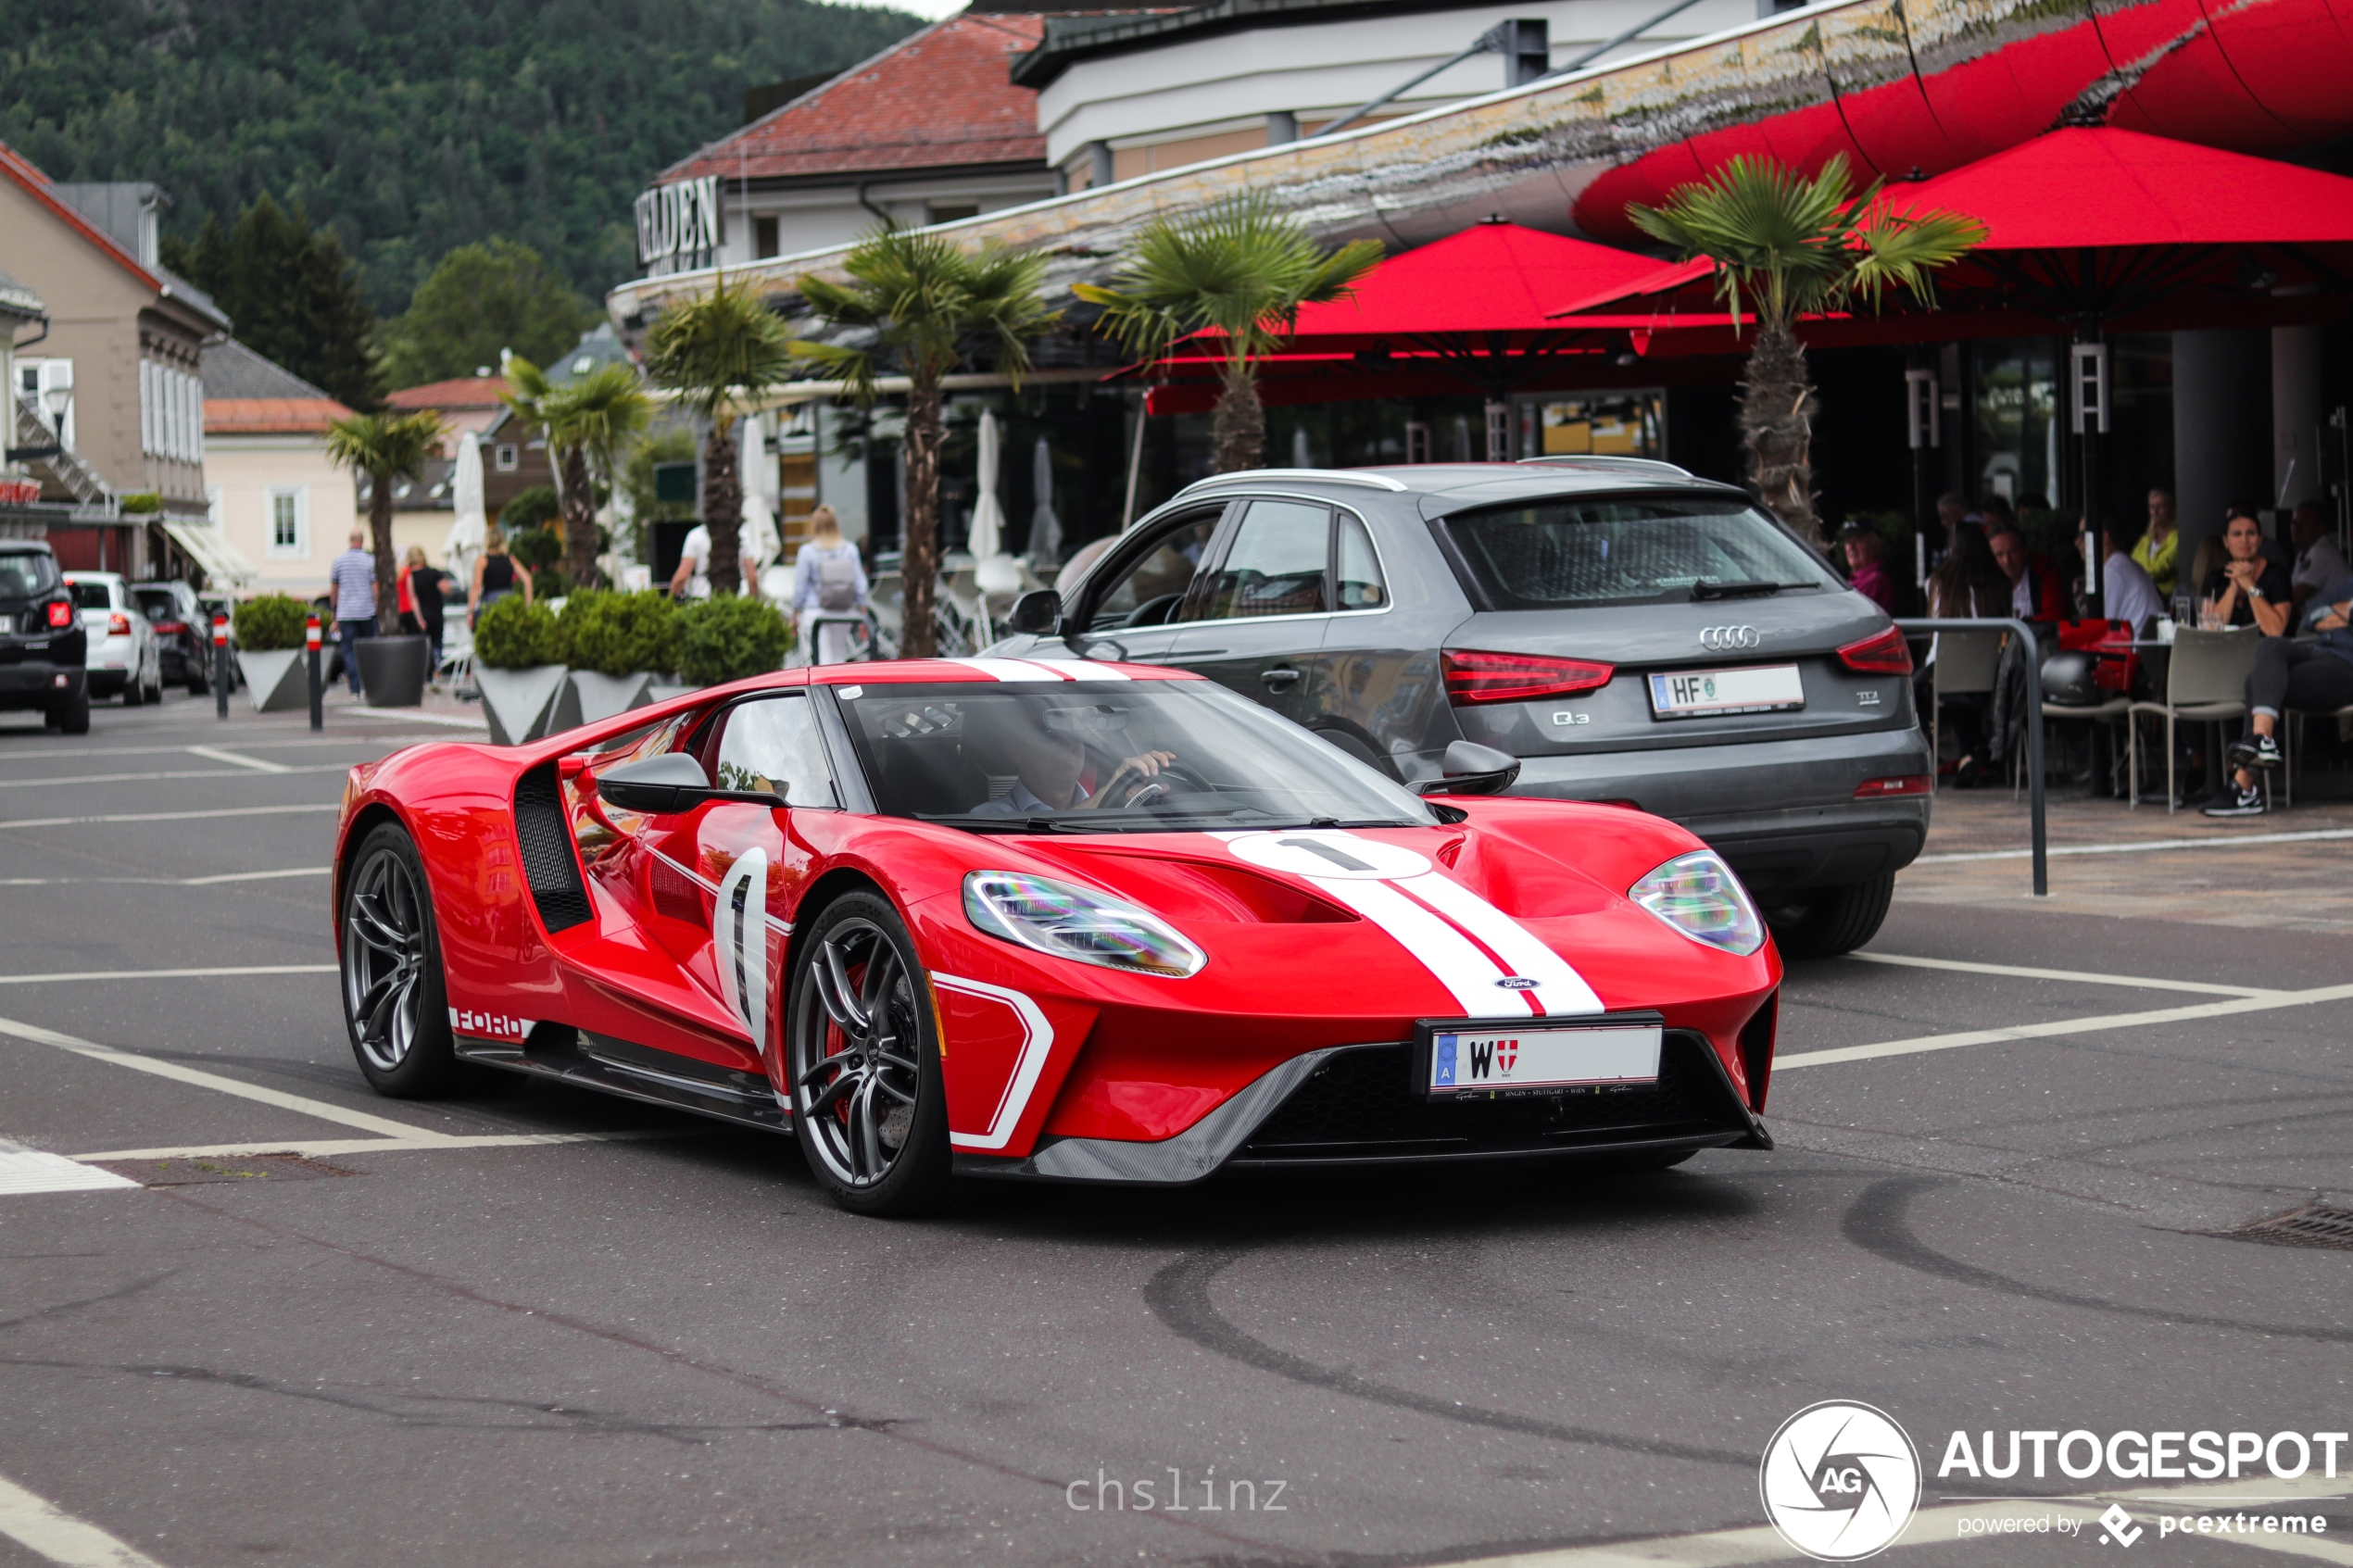 Ford GT 67 Heritage Edition steals the show in Velden